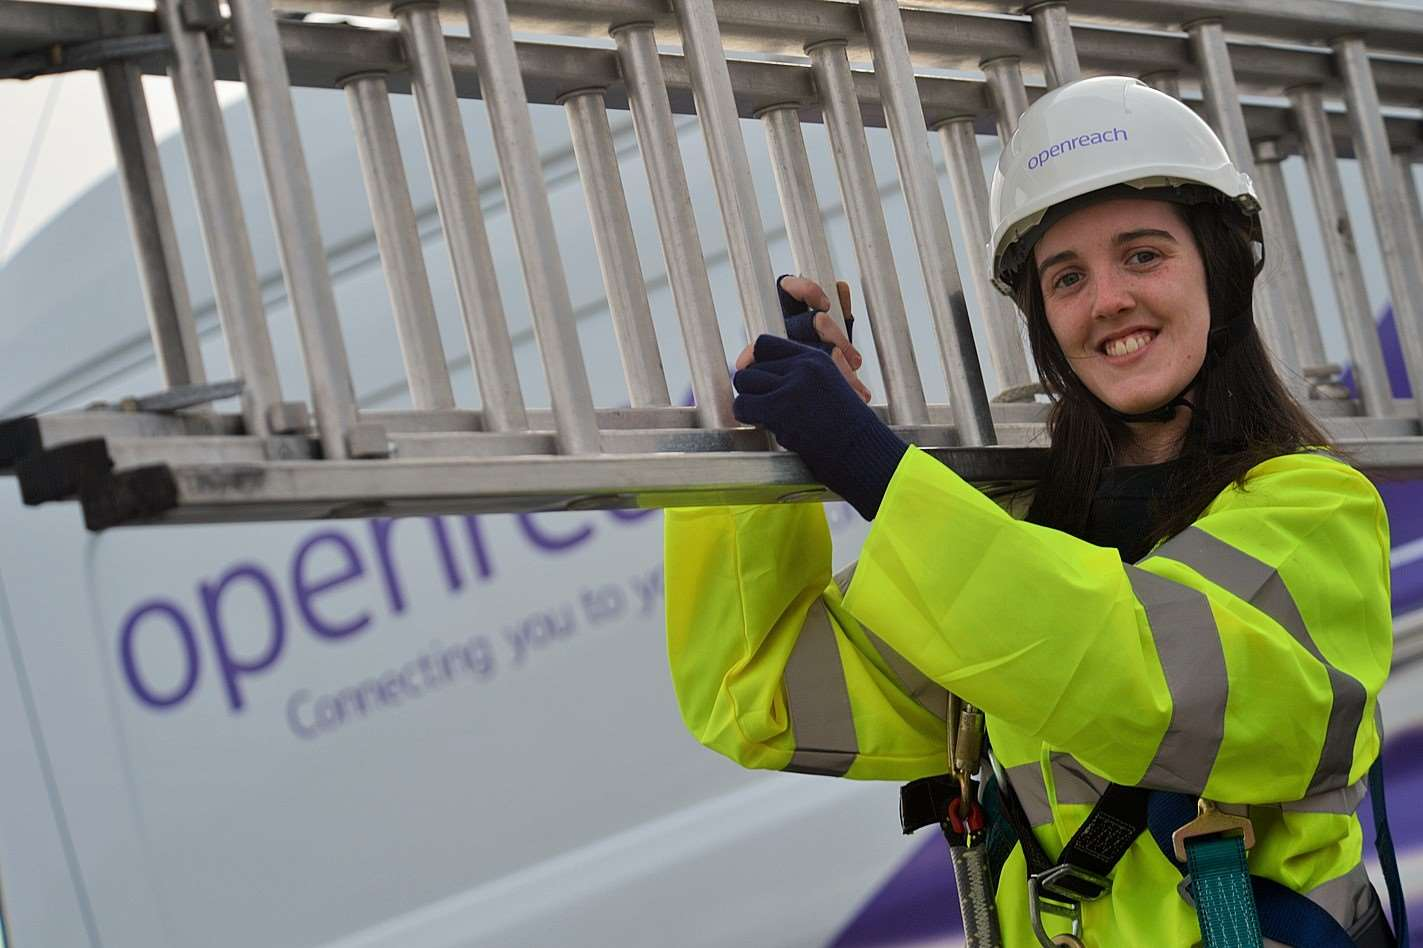 Openreach has launched an engineer recruitment drive